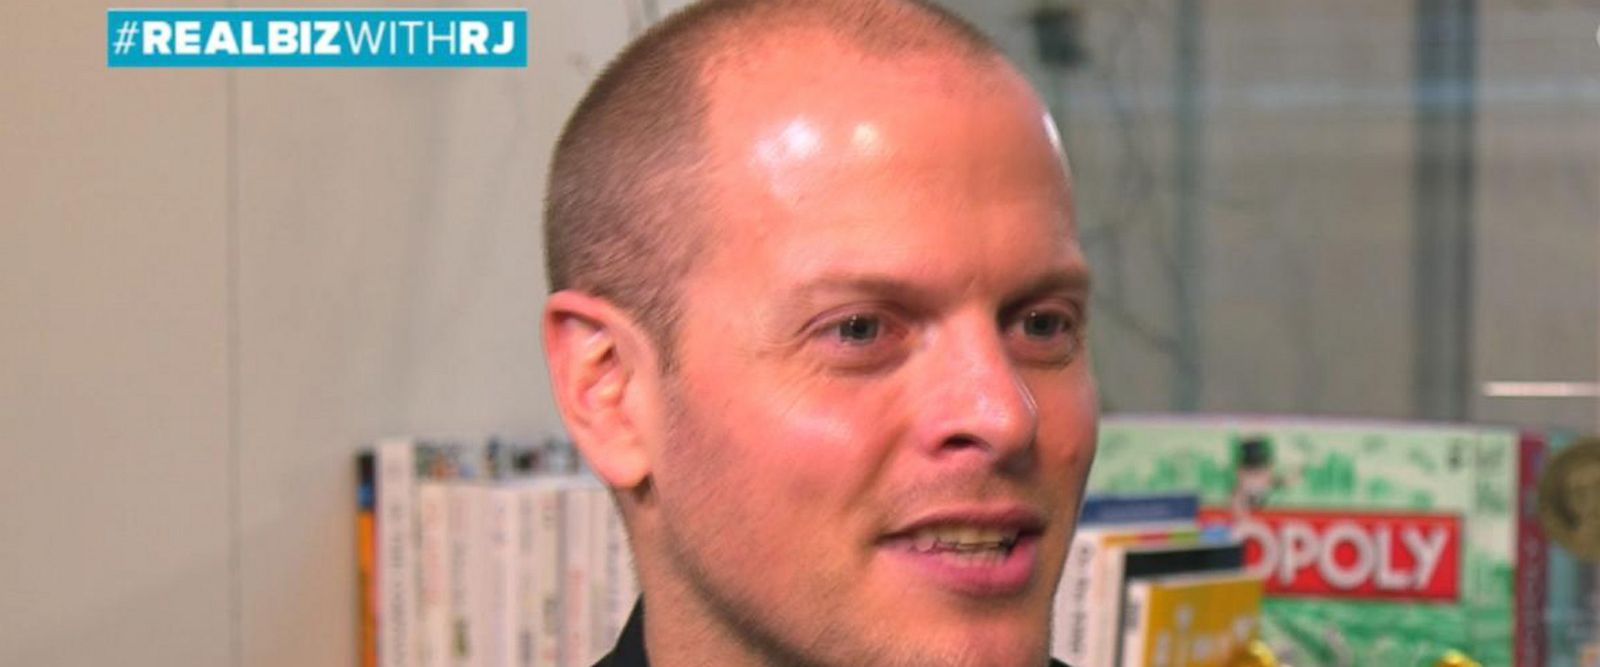 VIDEO: Worst Advice: Tim Ferriss